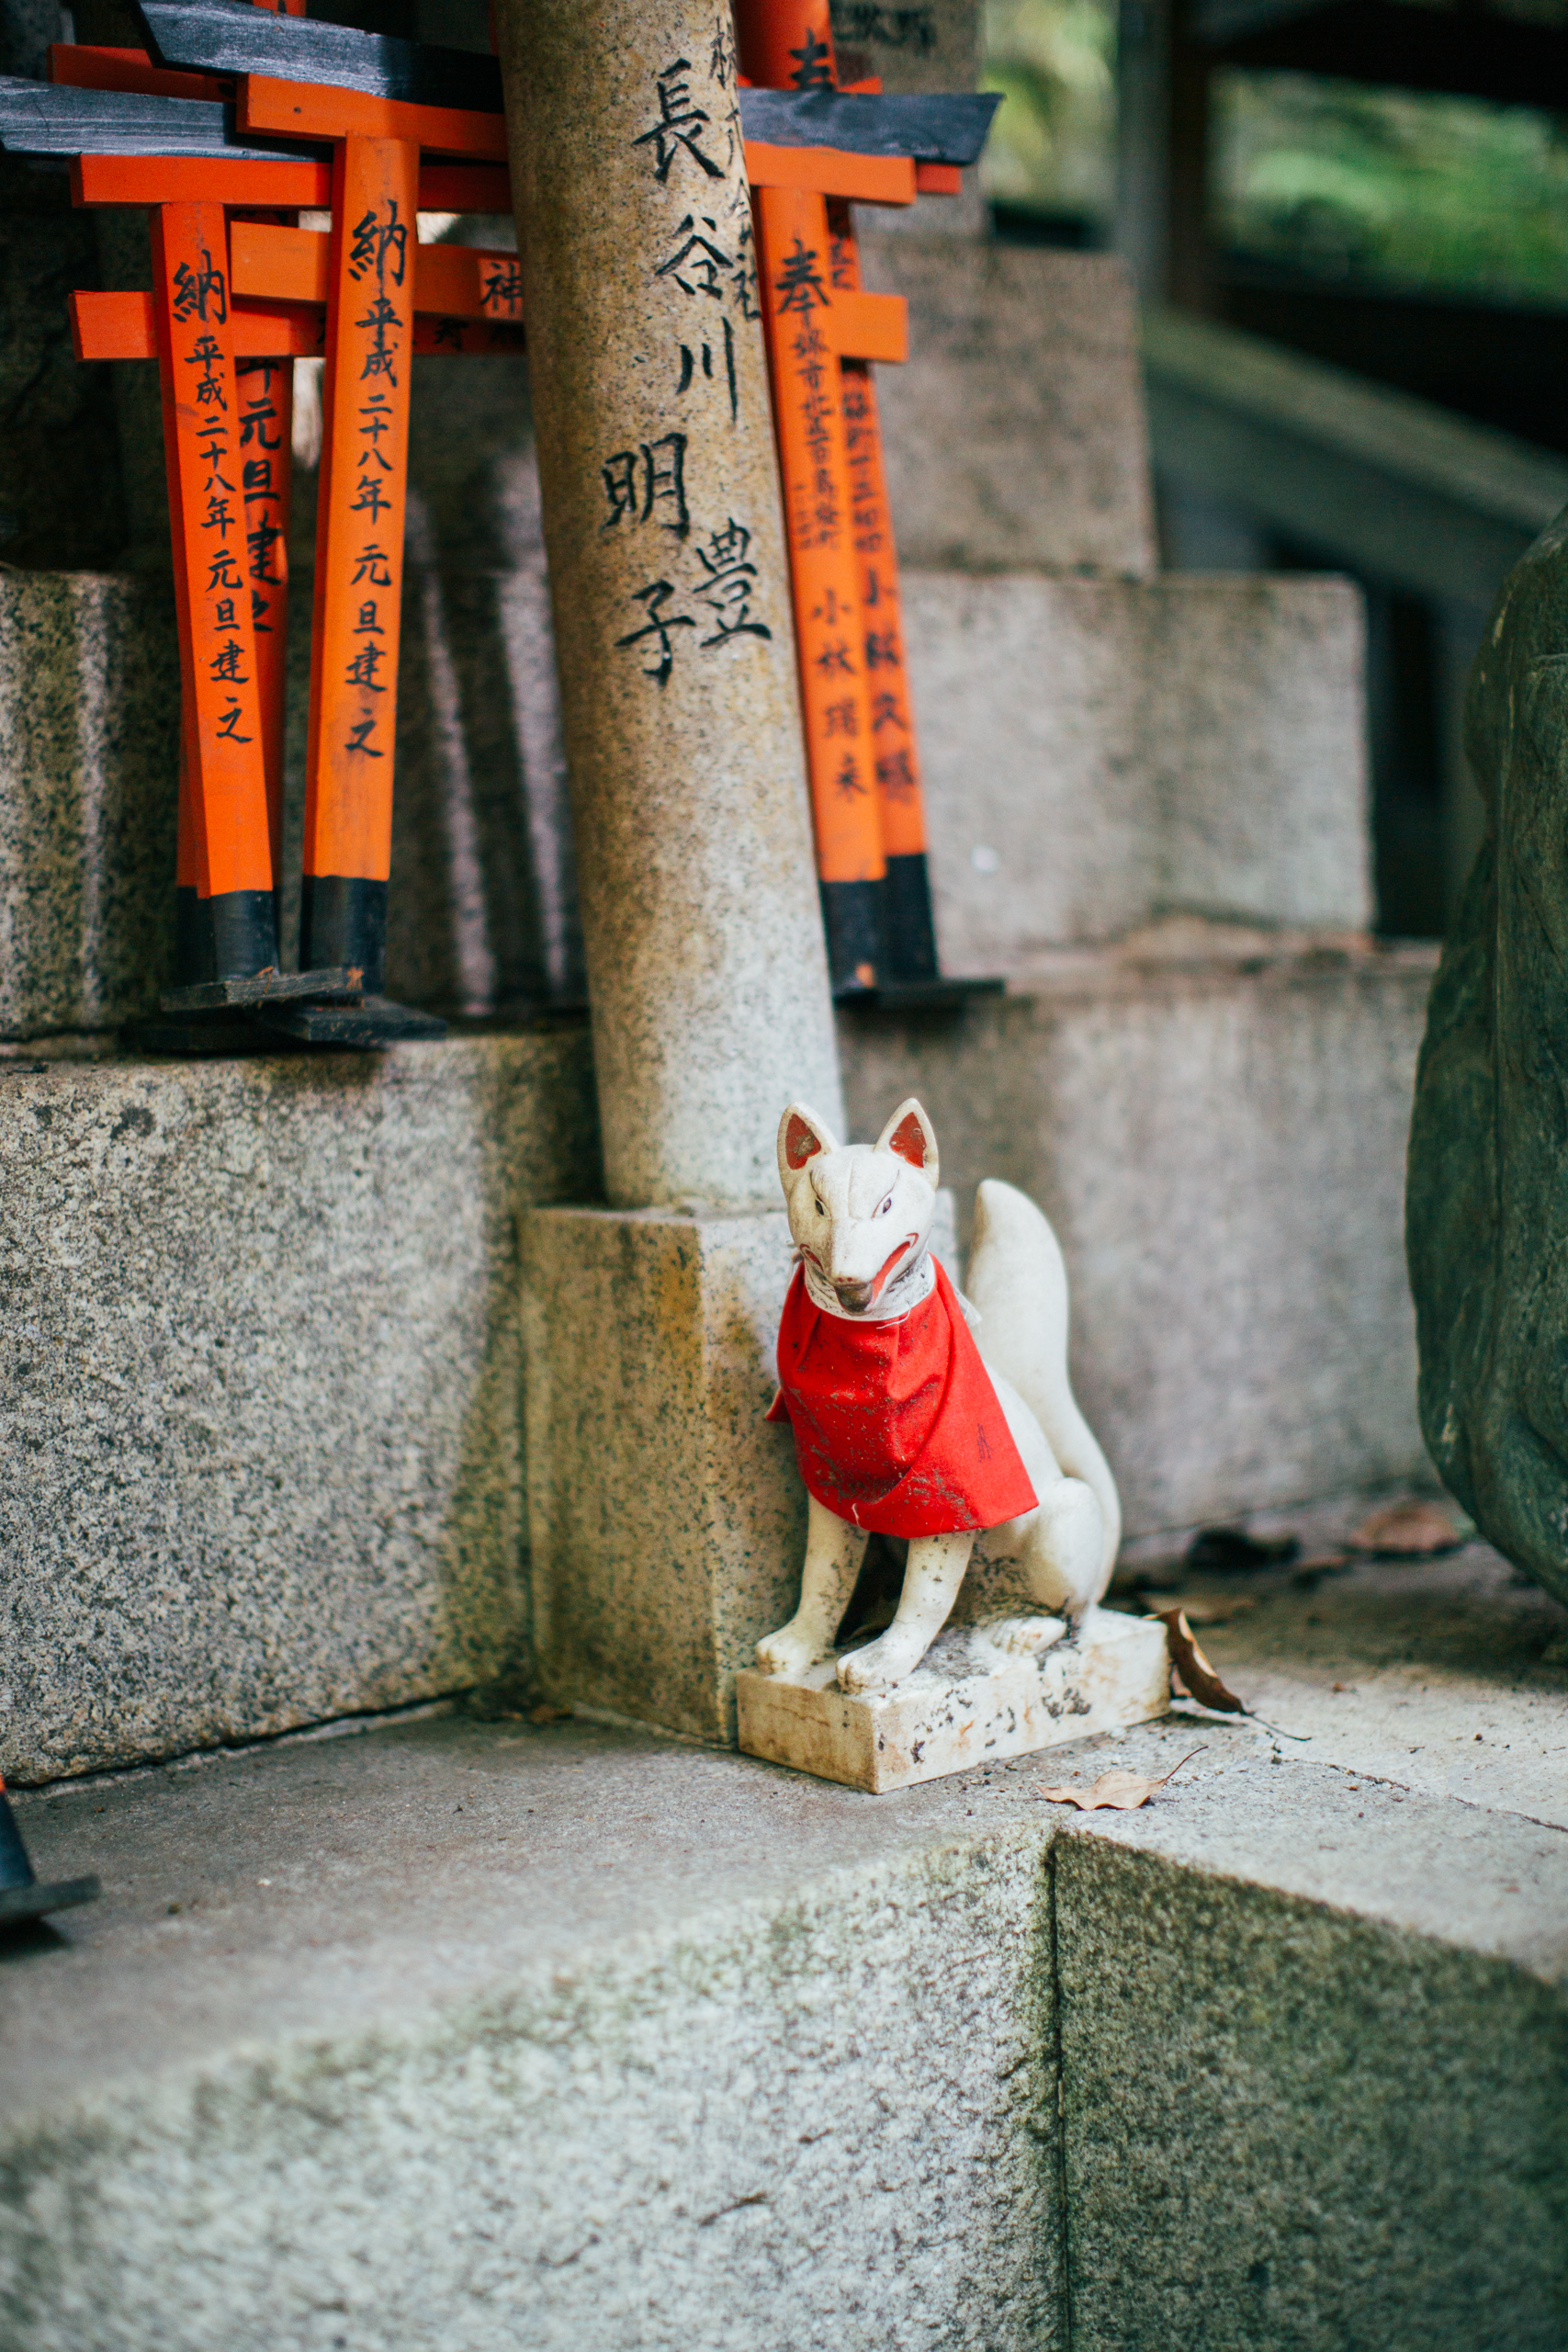 Unsurprisingly, aside from the many tori gates, the shrine is rife with statues and figures of foxes.